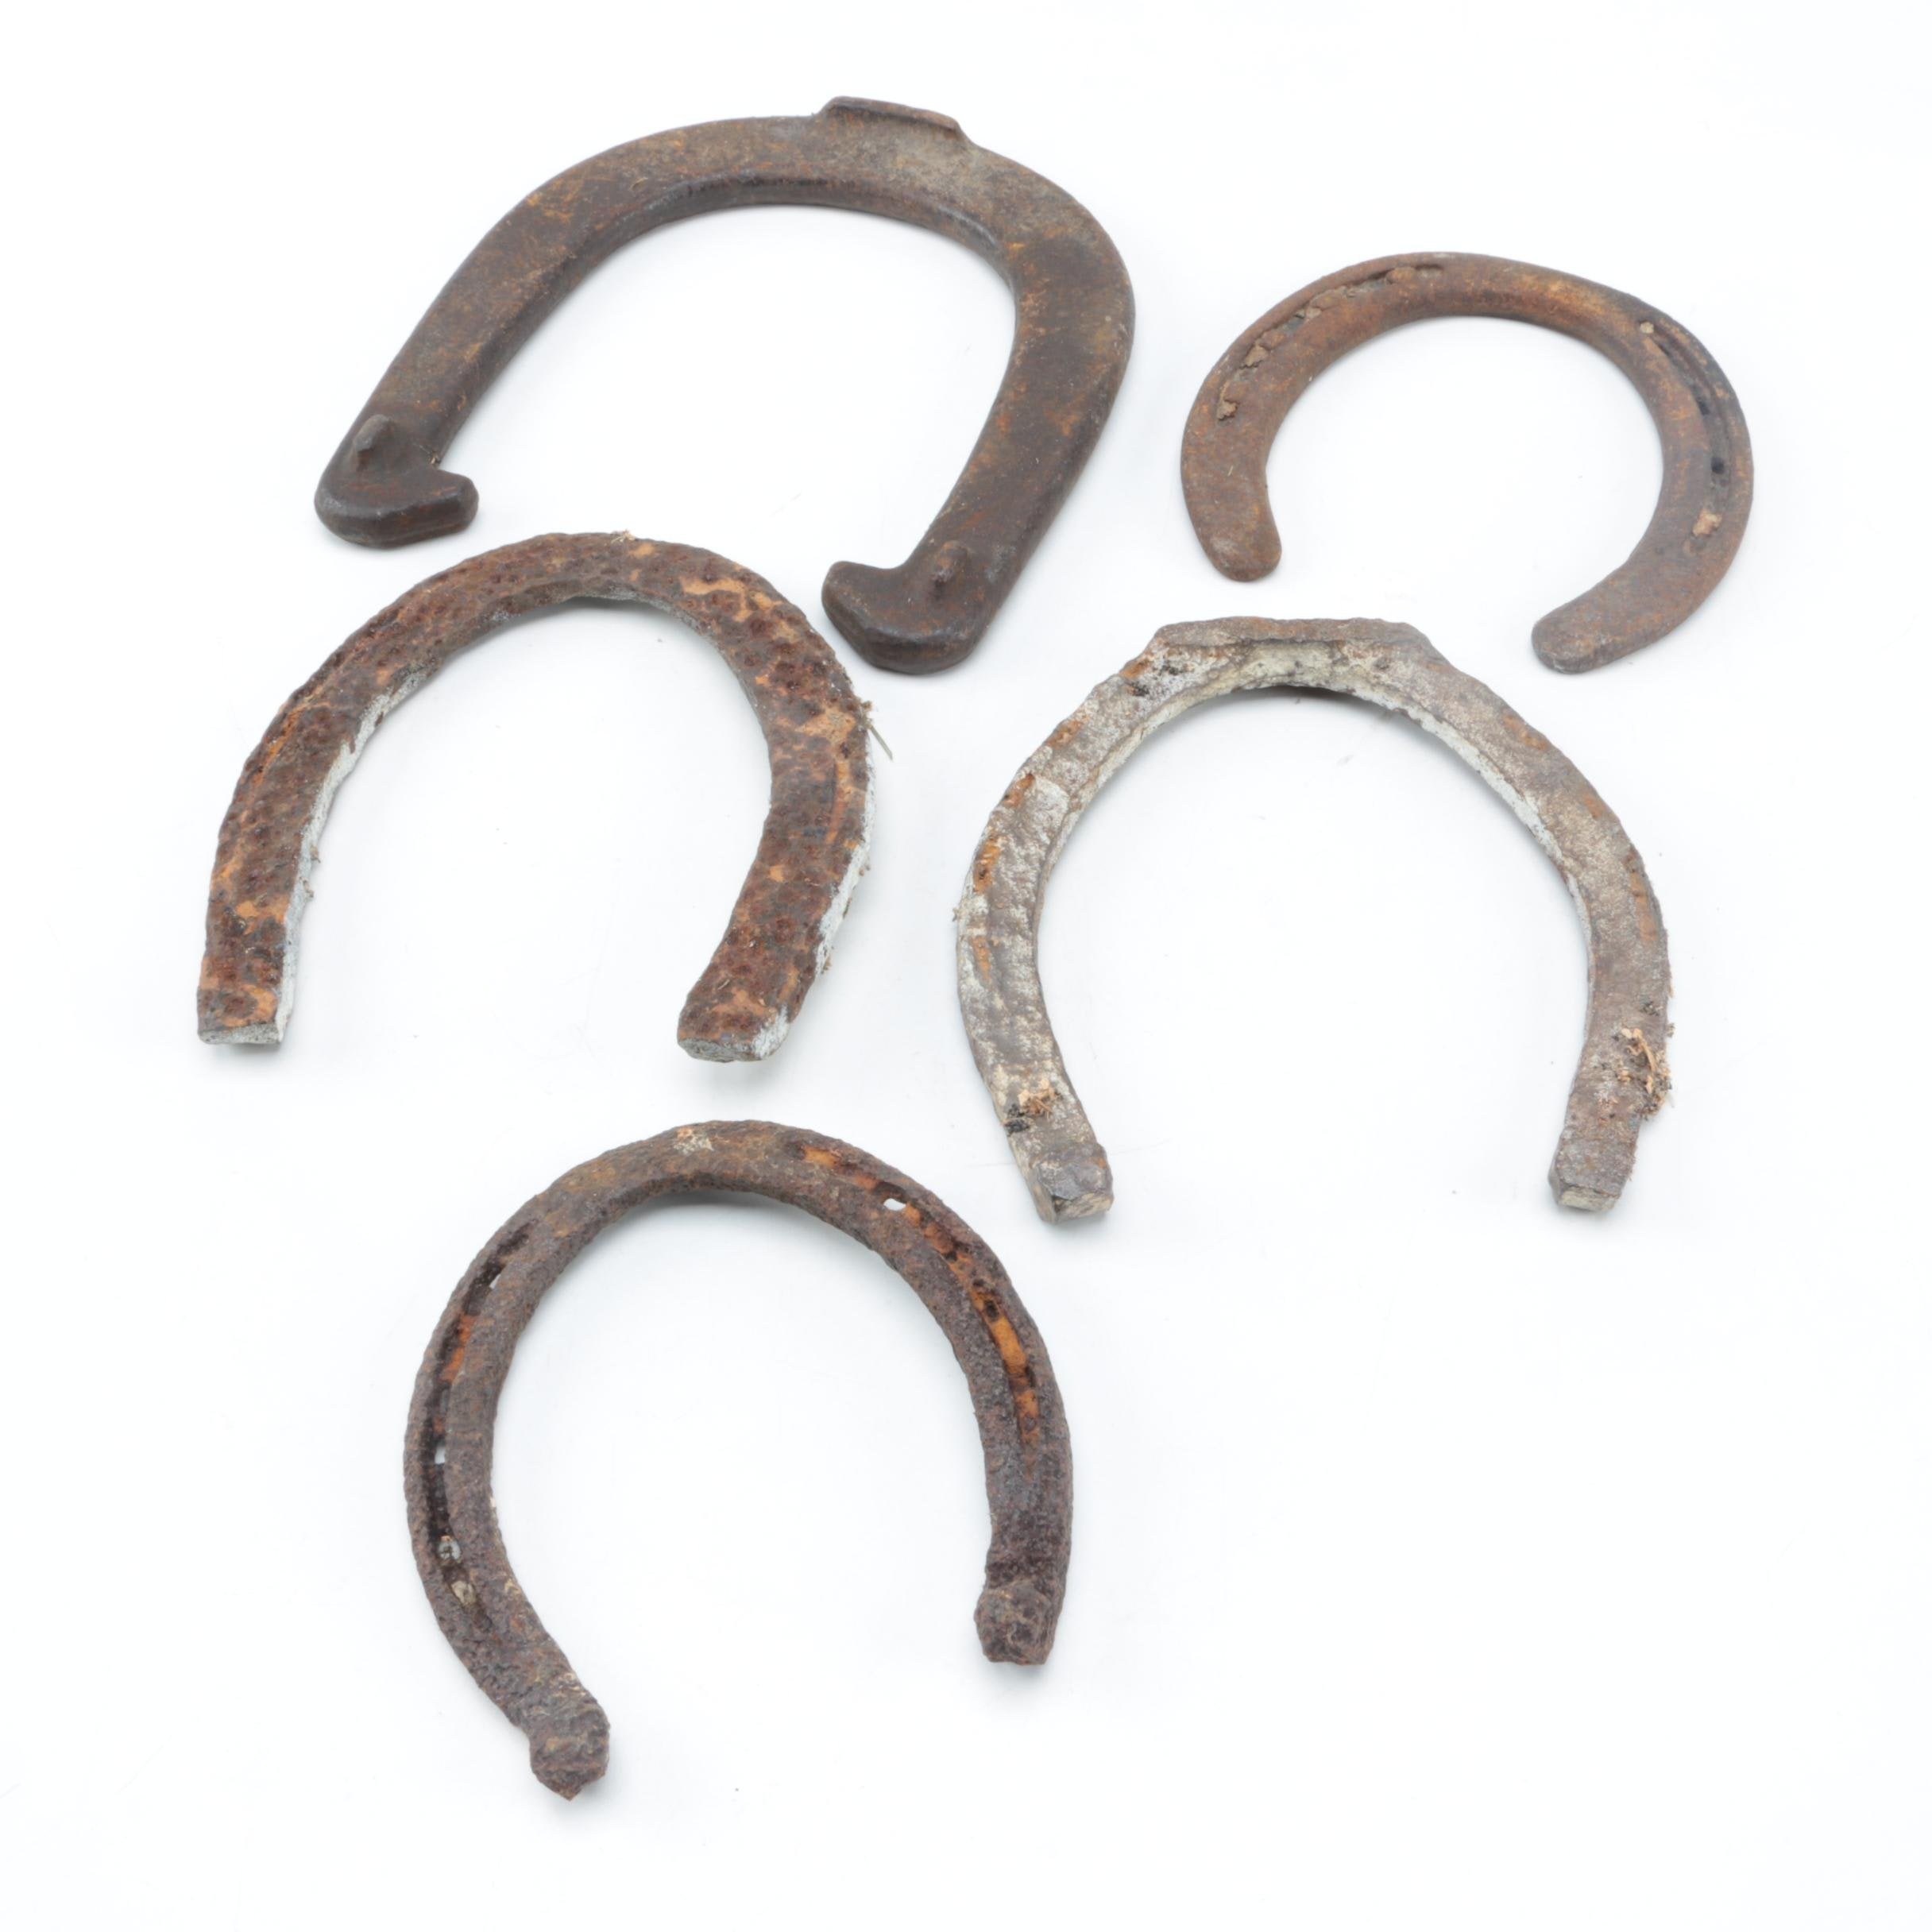 Vintage Horseshoes